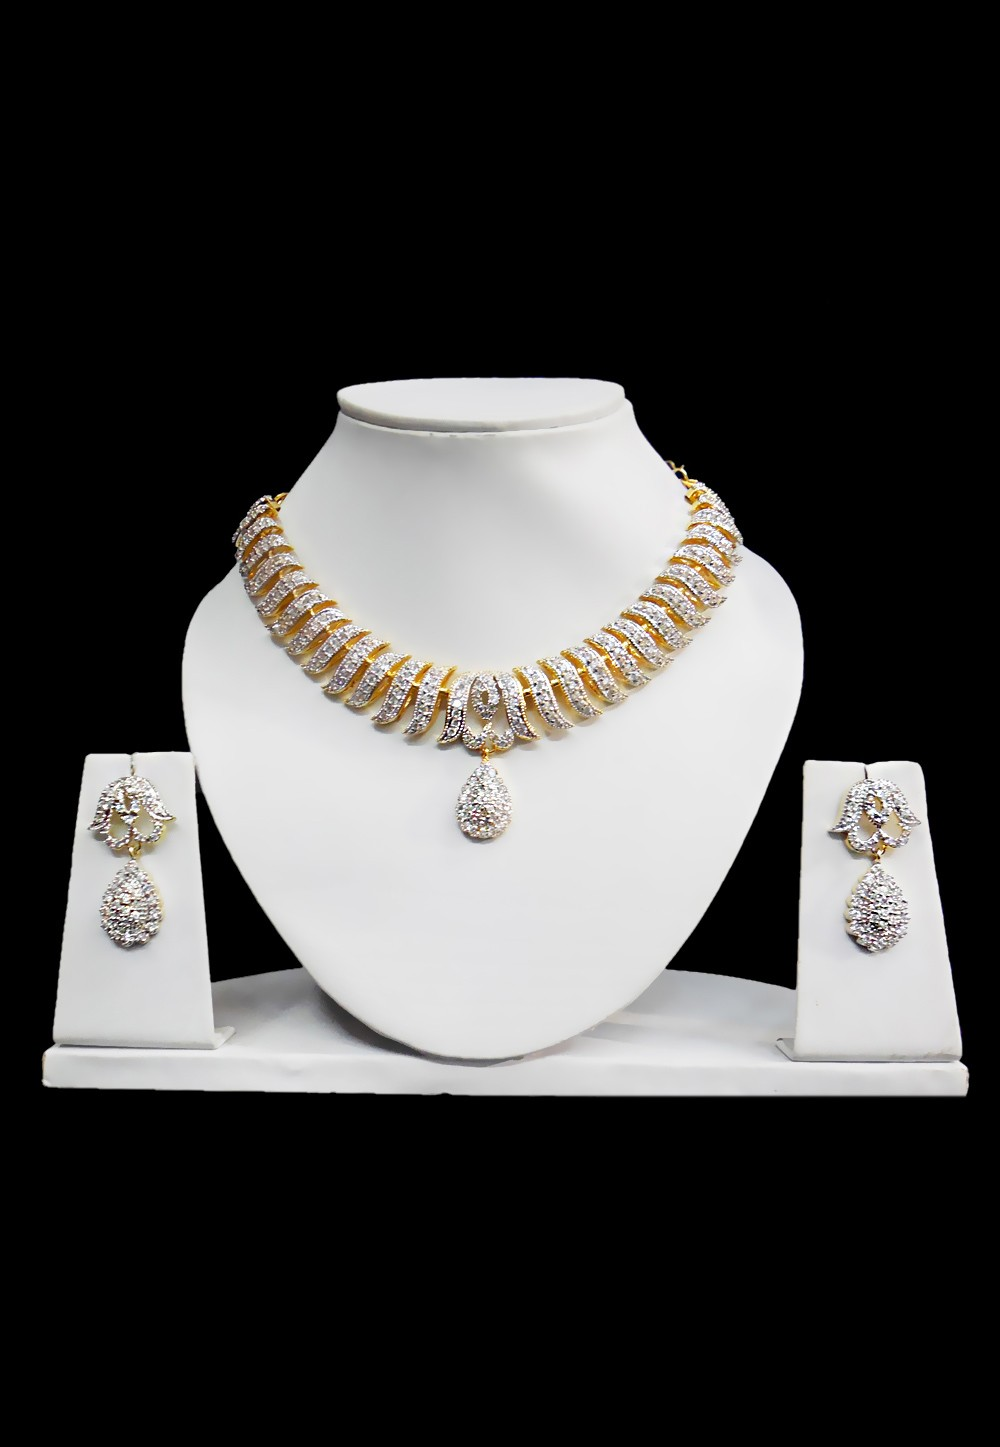 88e5af88024b2 American Diamond Jewelry: Sparkling Option Prices Below Your ...